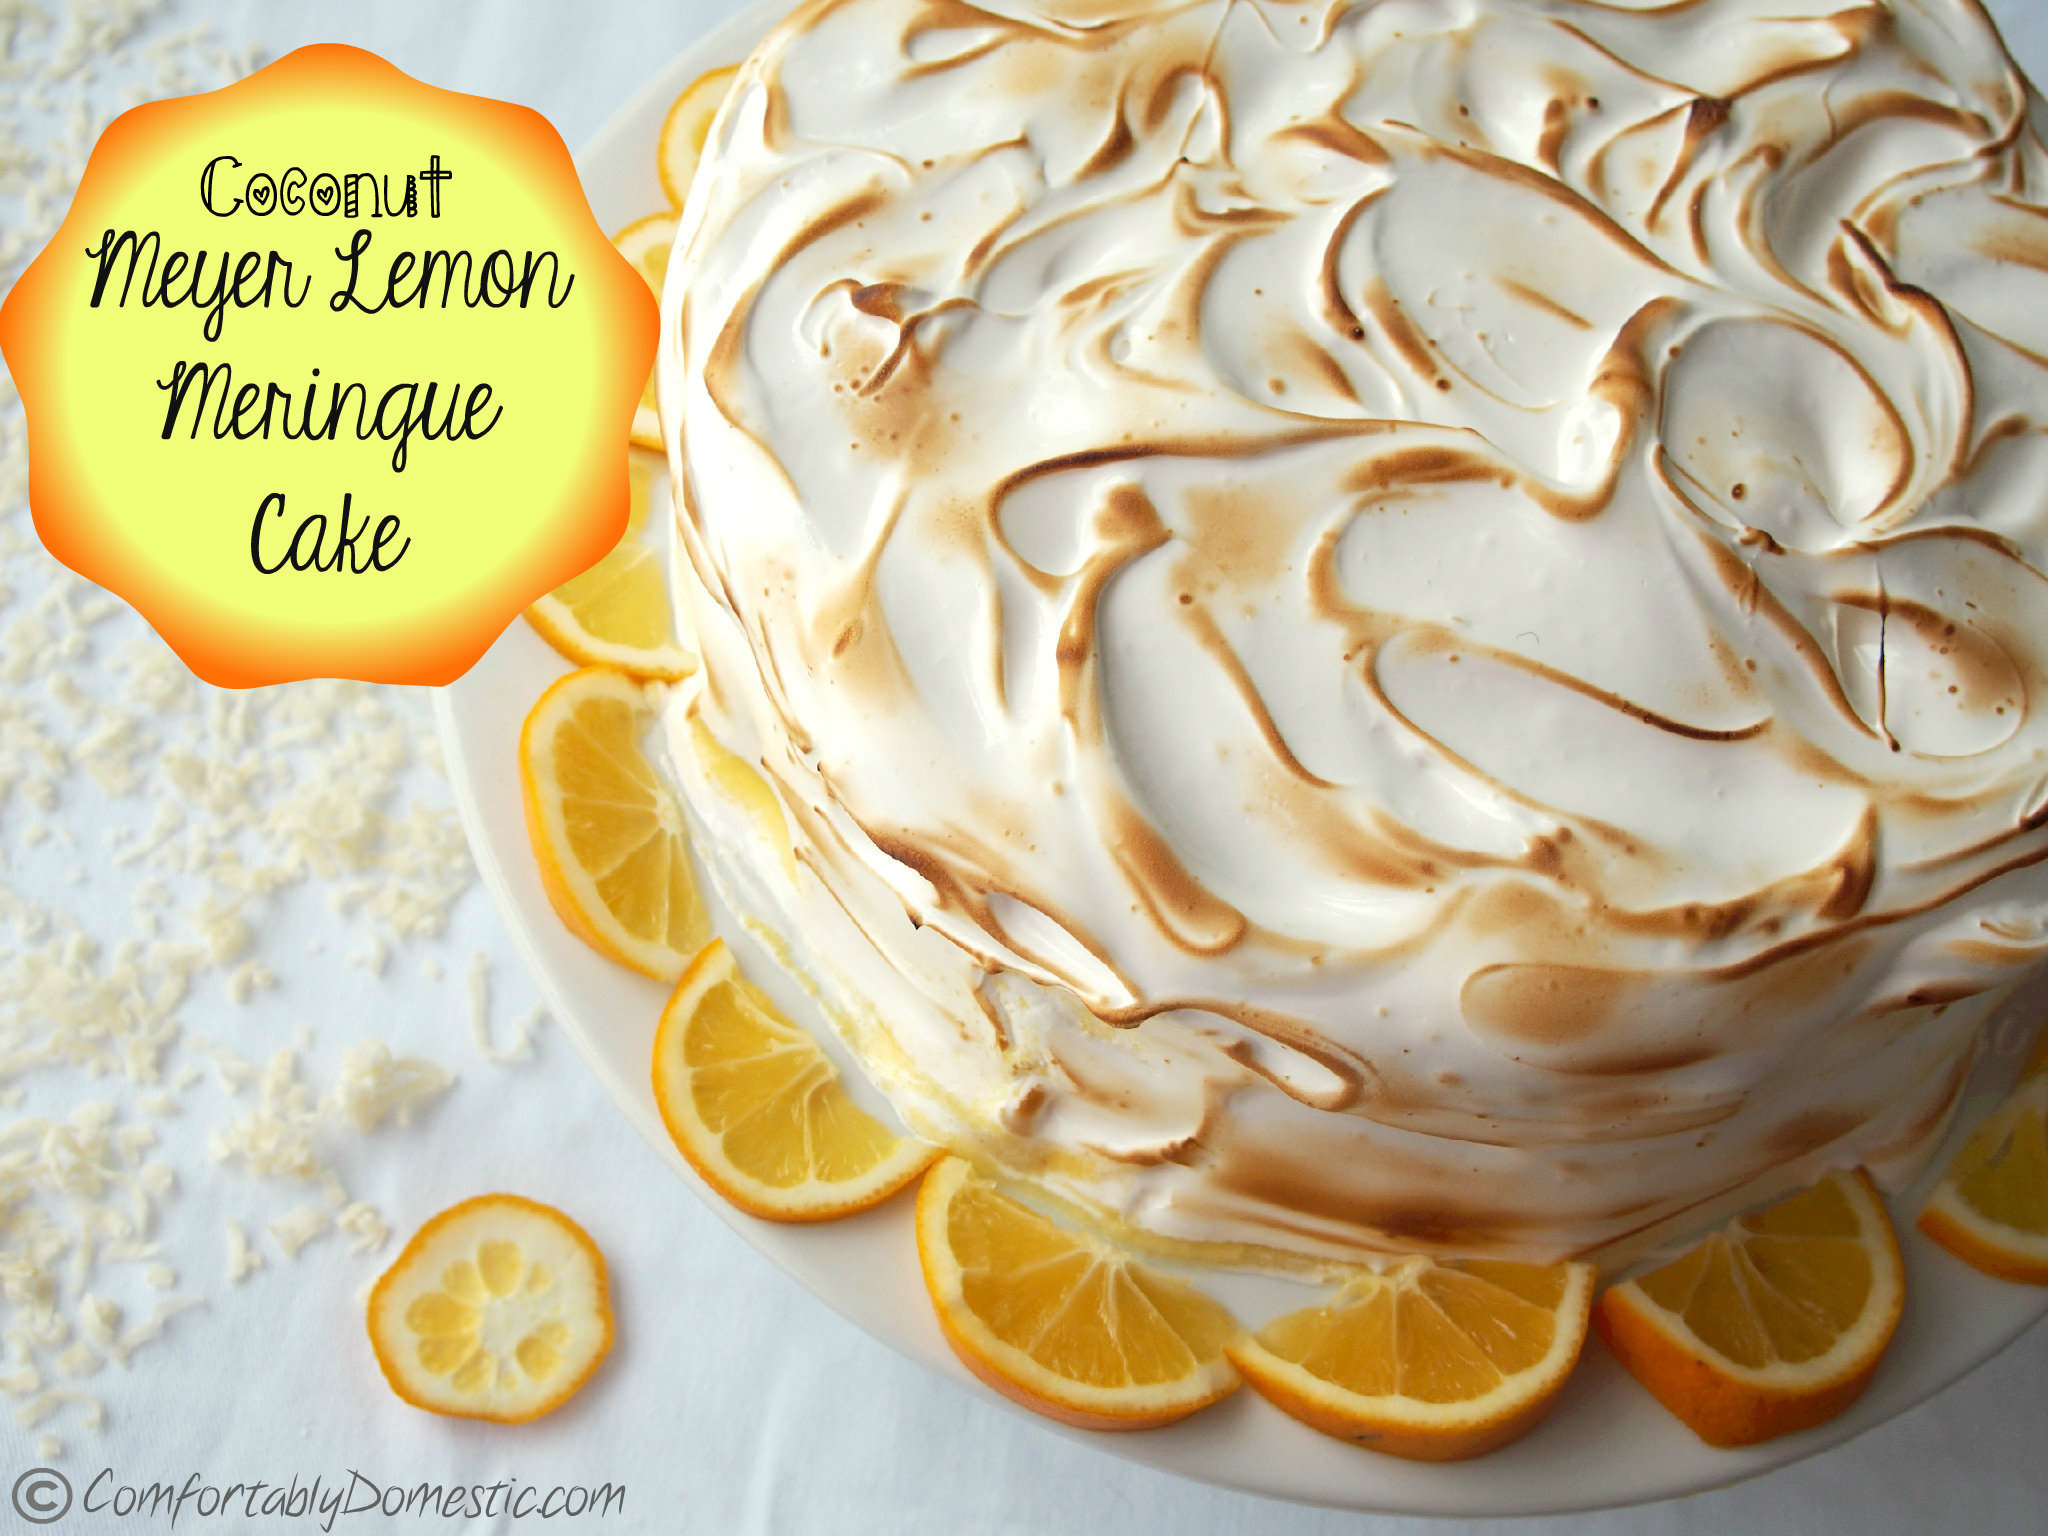 ... it Memorable: Coconut Meyer Lemon Meringue Cake - Comfortably Domestic